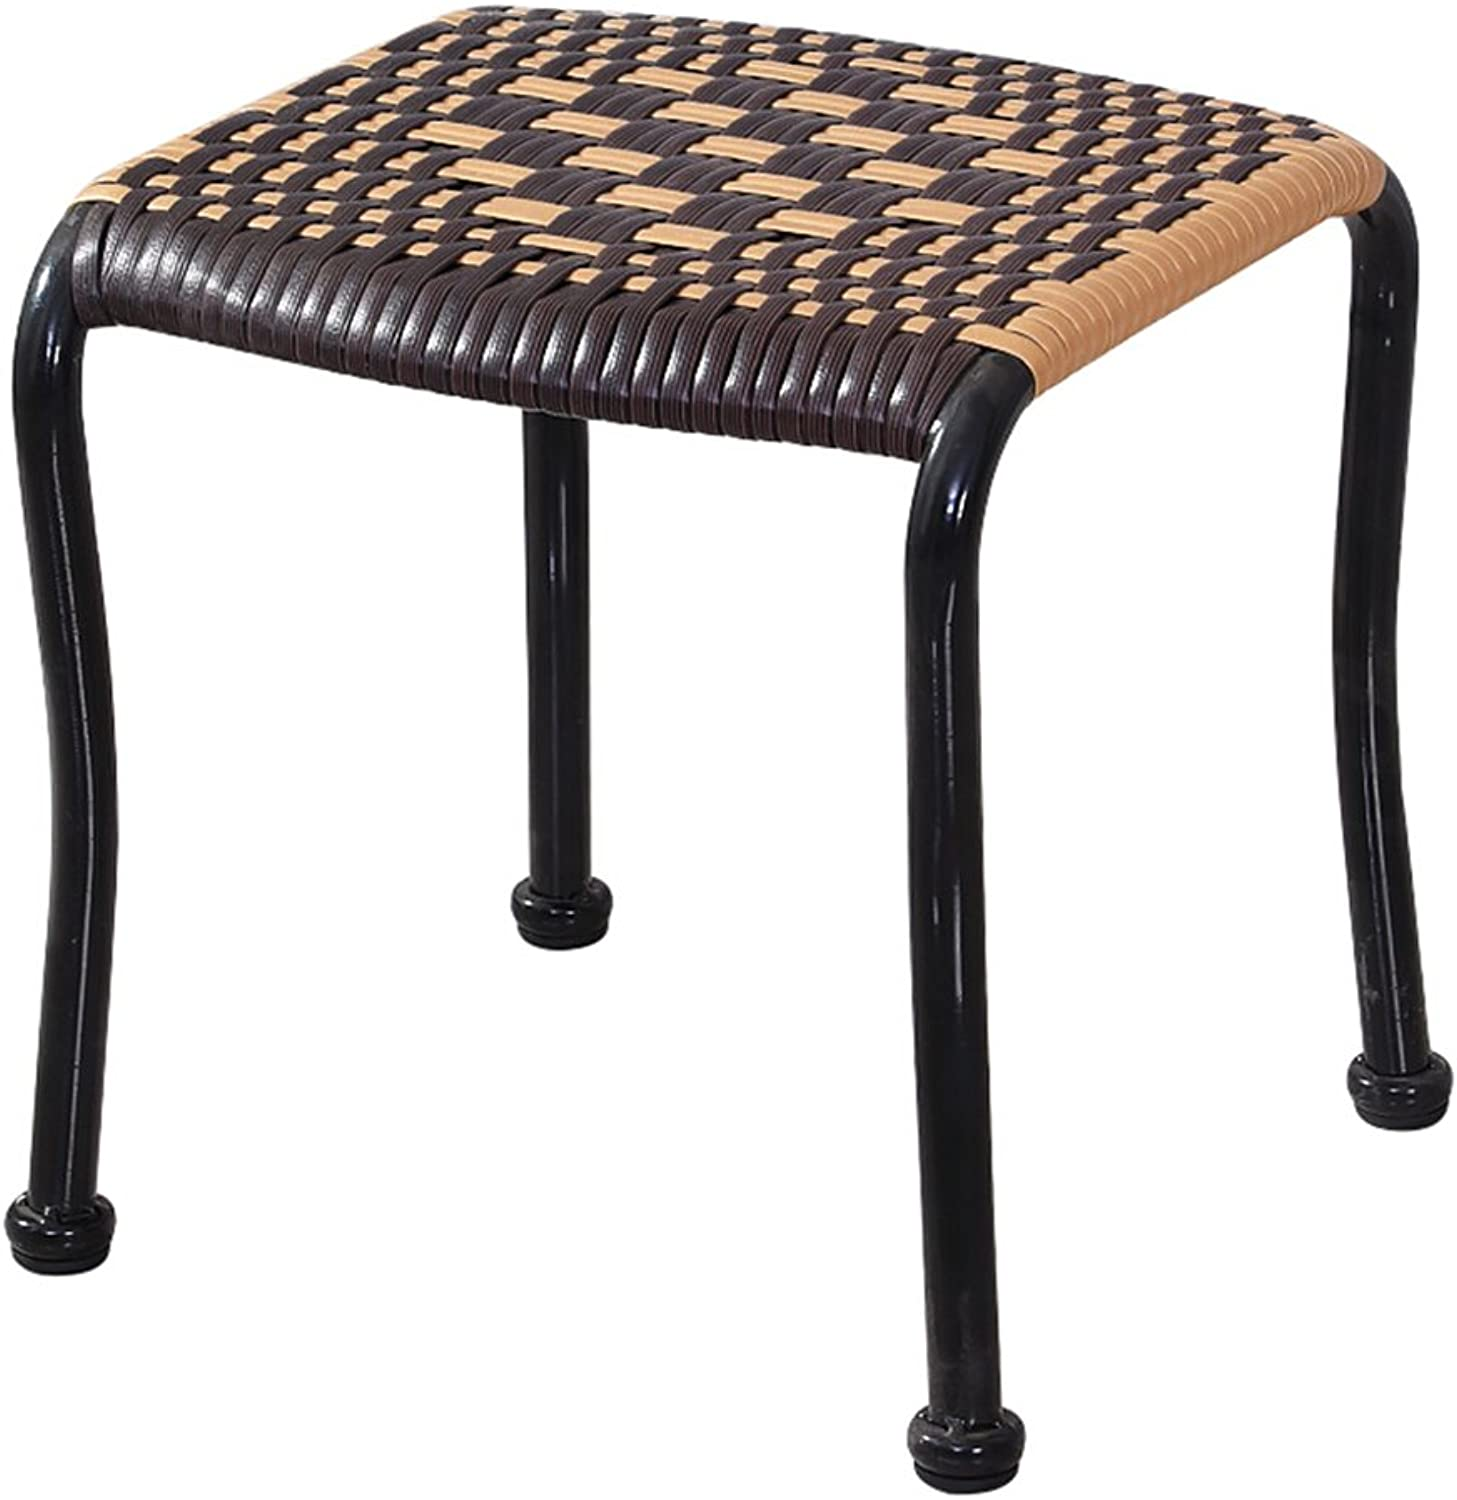 Footstool Rattan Stool Cool Small Bench Plastic Stool shoes Bench Home Bedroom Living Room Creative Adult Dining Chair Stool 30 x 30 x 30cm